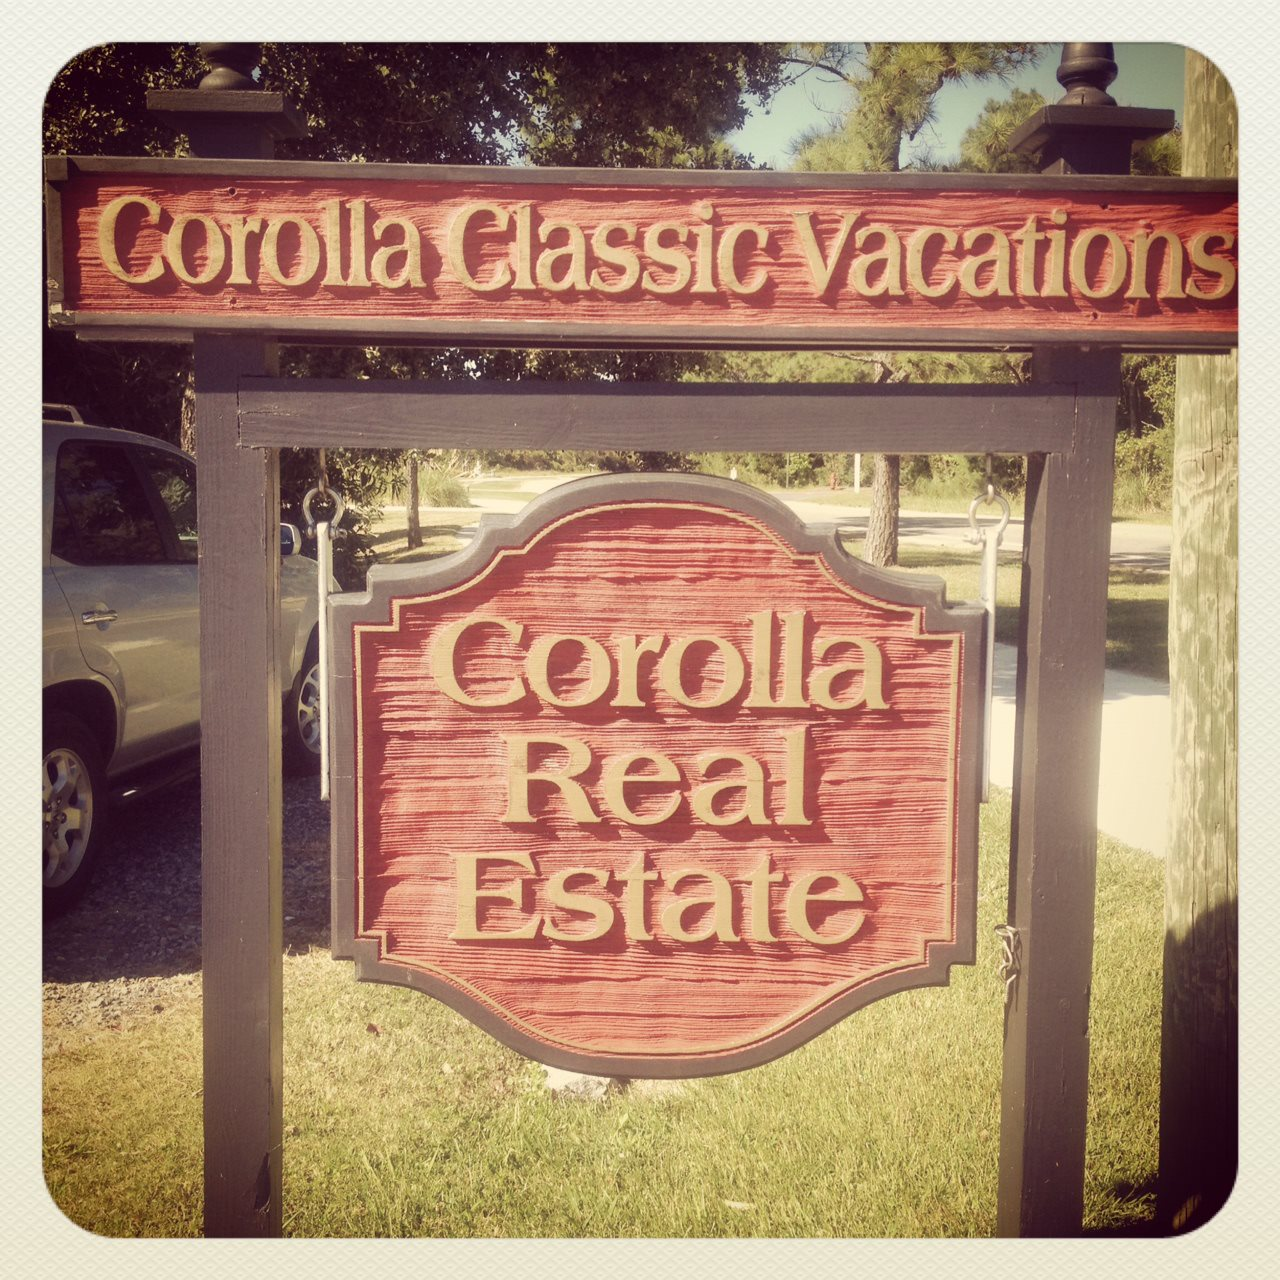 Corolla Classic Vacations in Corolla NC